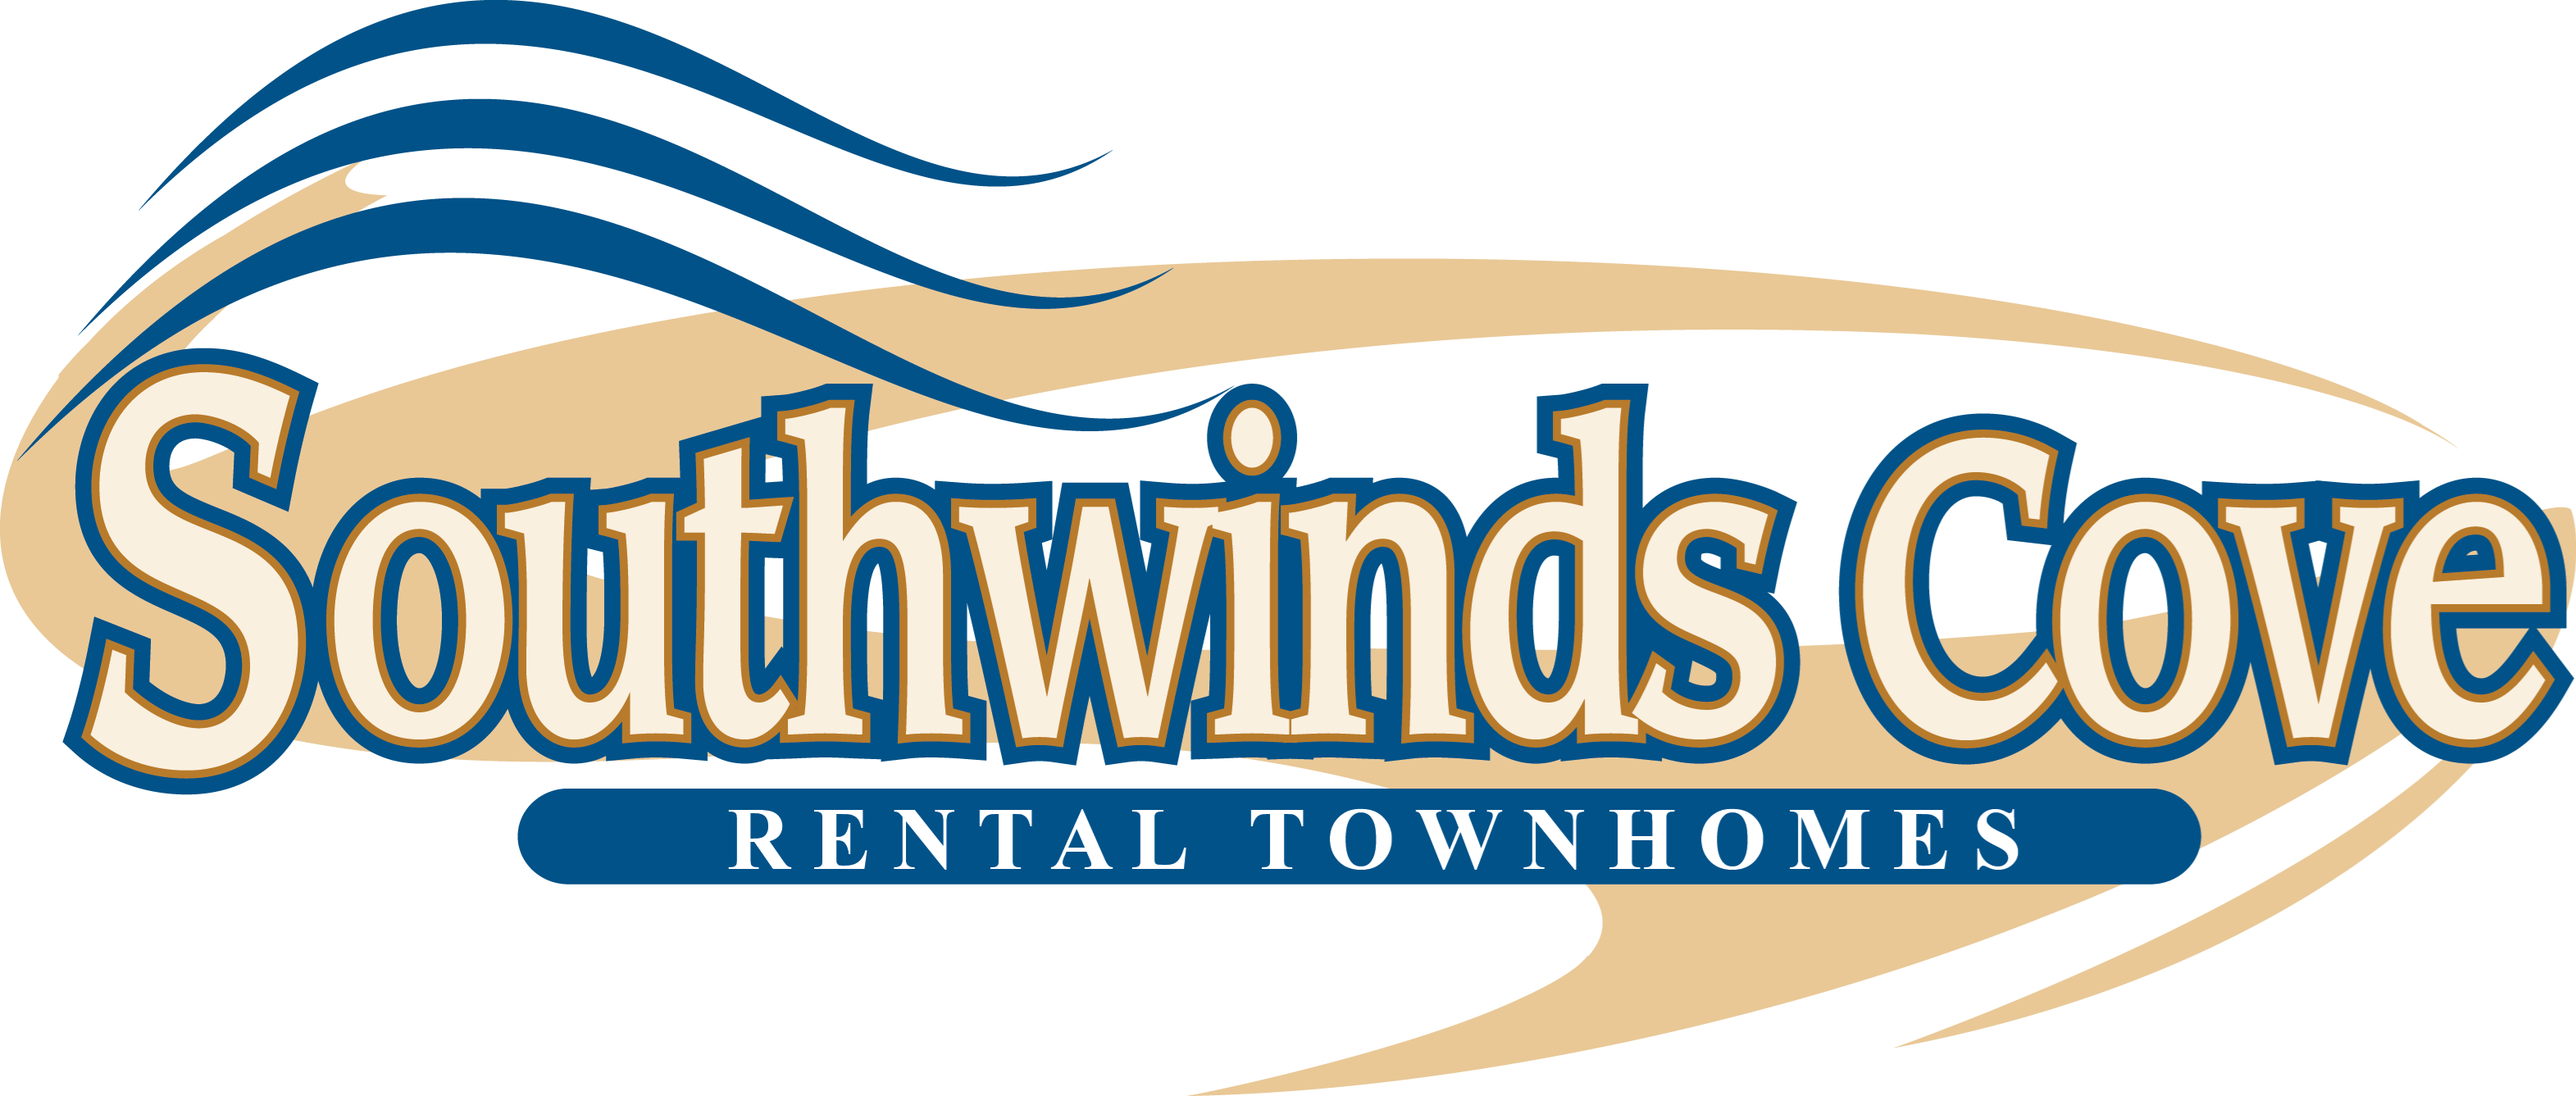 Southwinds Cove Apartments for rent in Leesburg, FL. Make this community your new home or visit other Concord Rents communities at ConcordRents.com. Logo